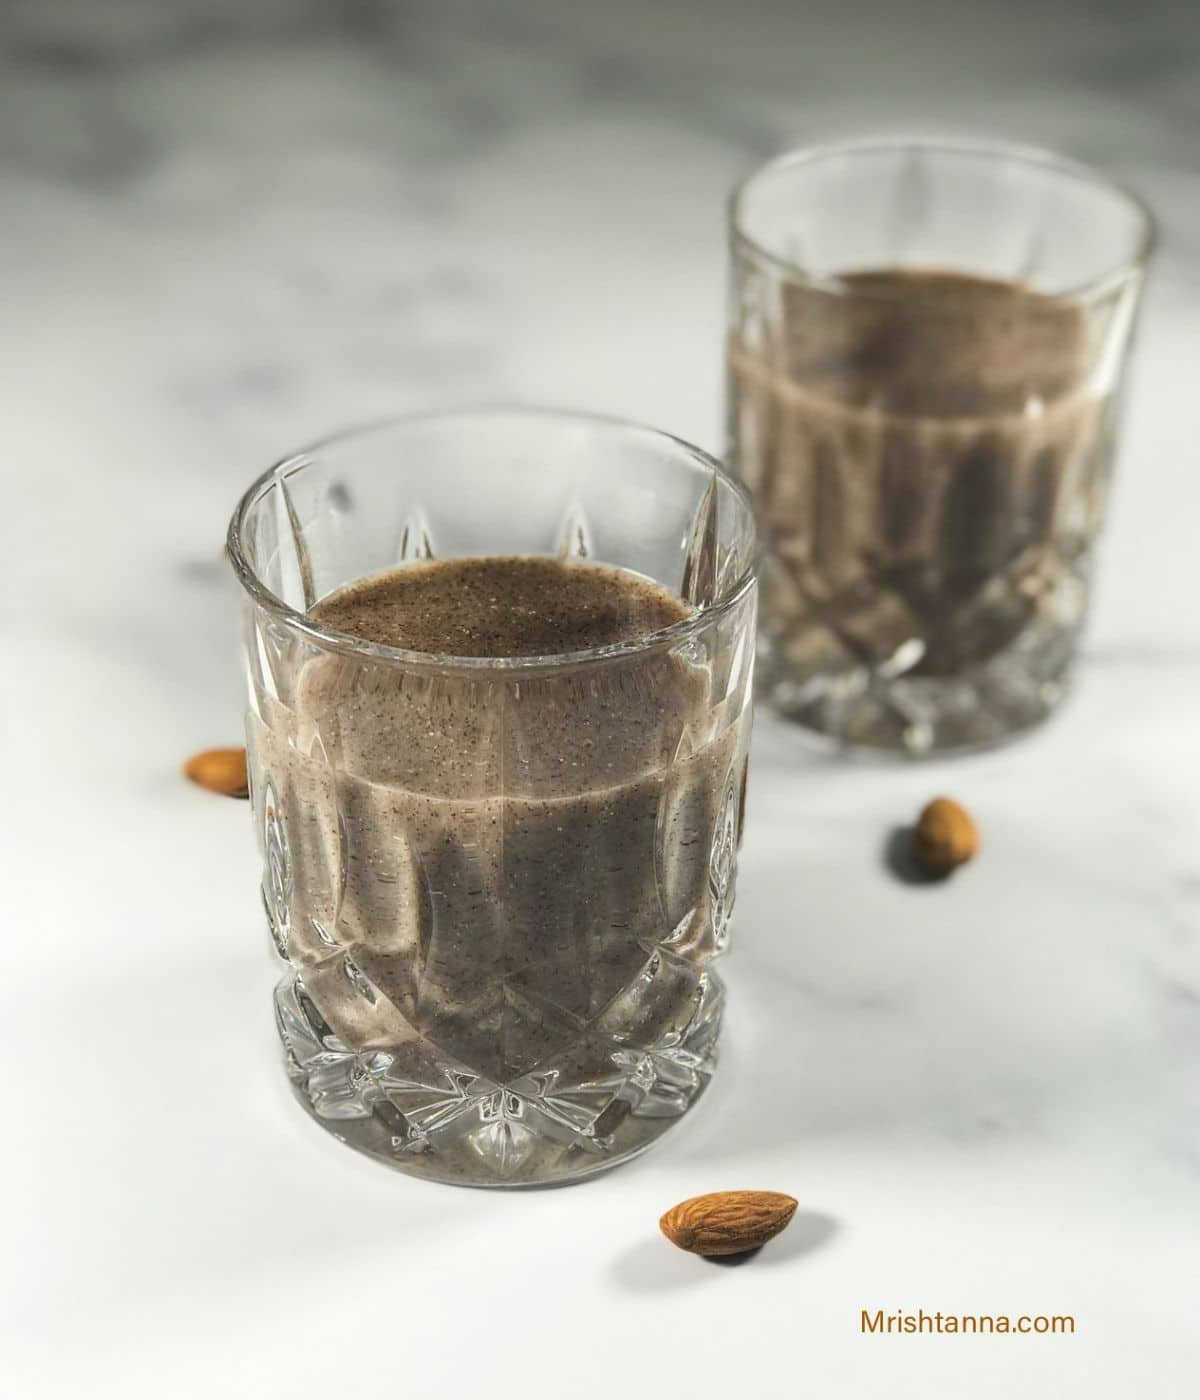 A glass is with ragi malt drink on the white board.